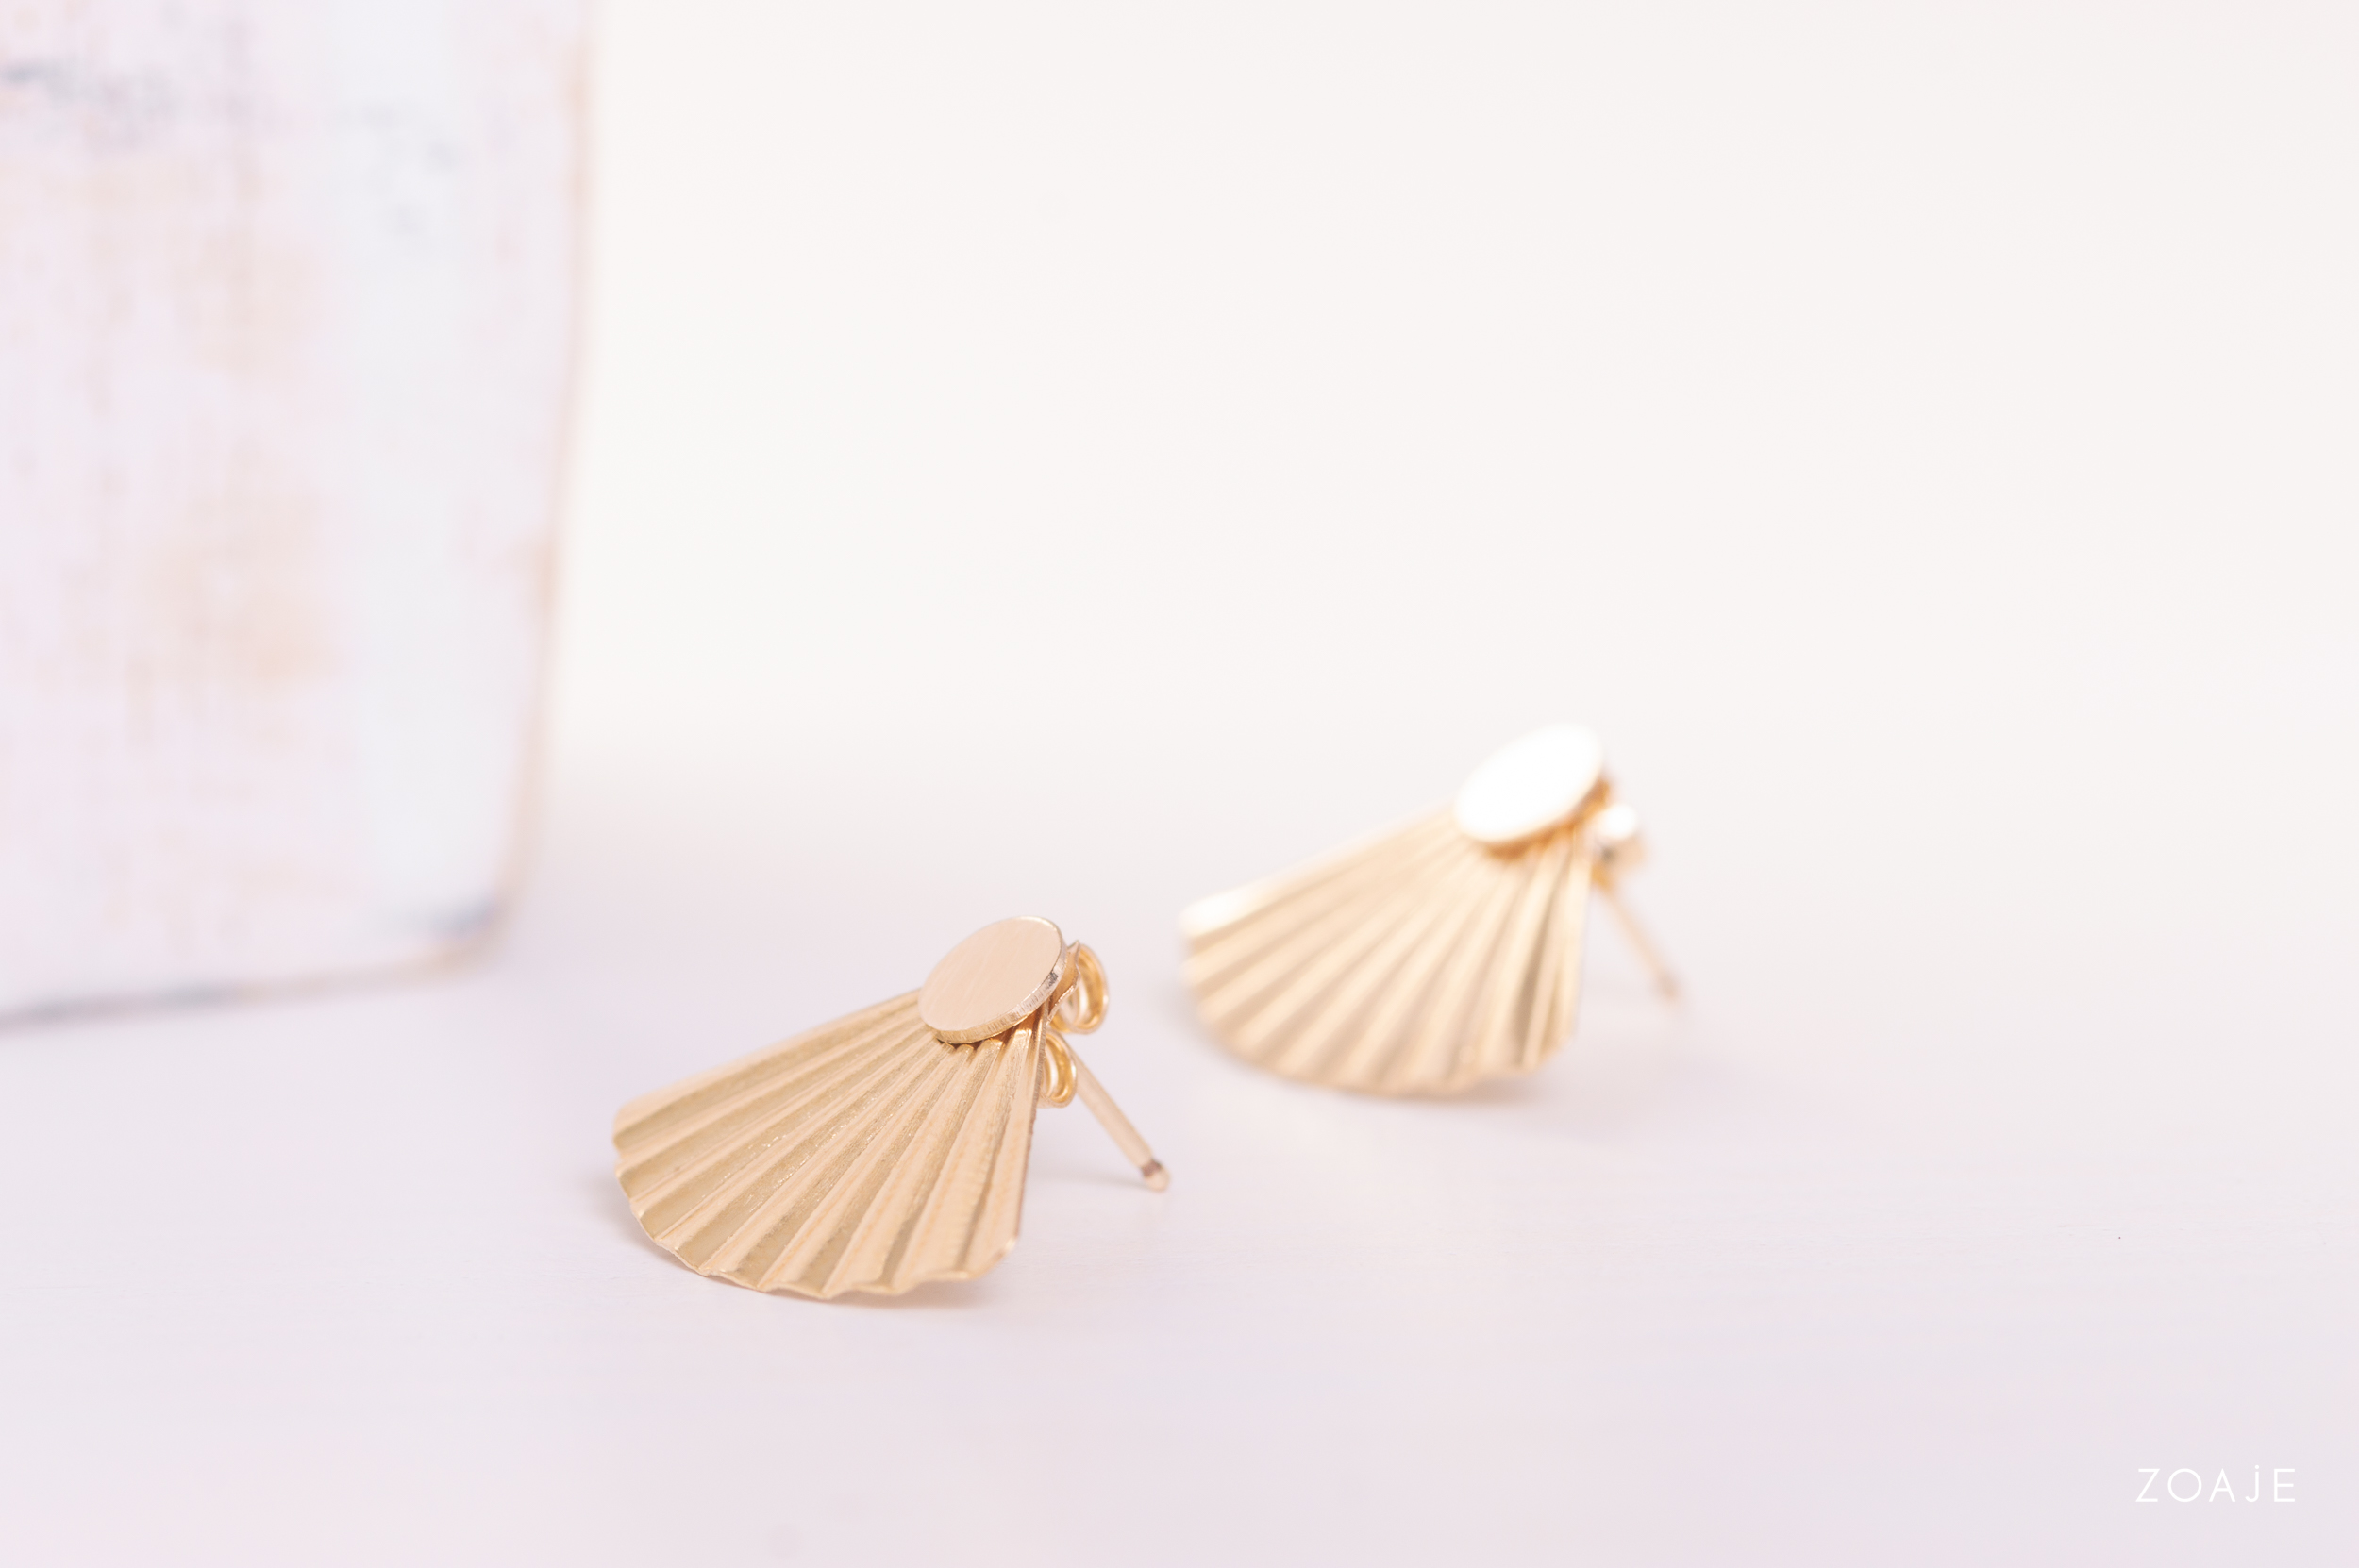 ZOAJE - SS18 WITHOUT MODEL-934.jpg